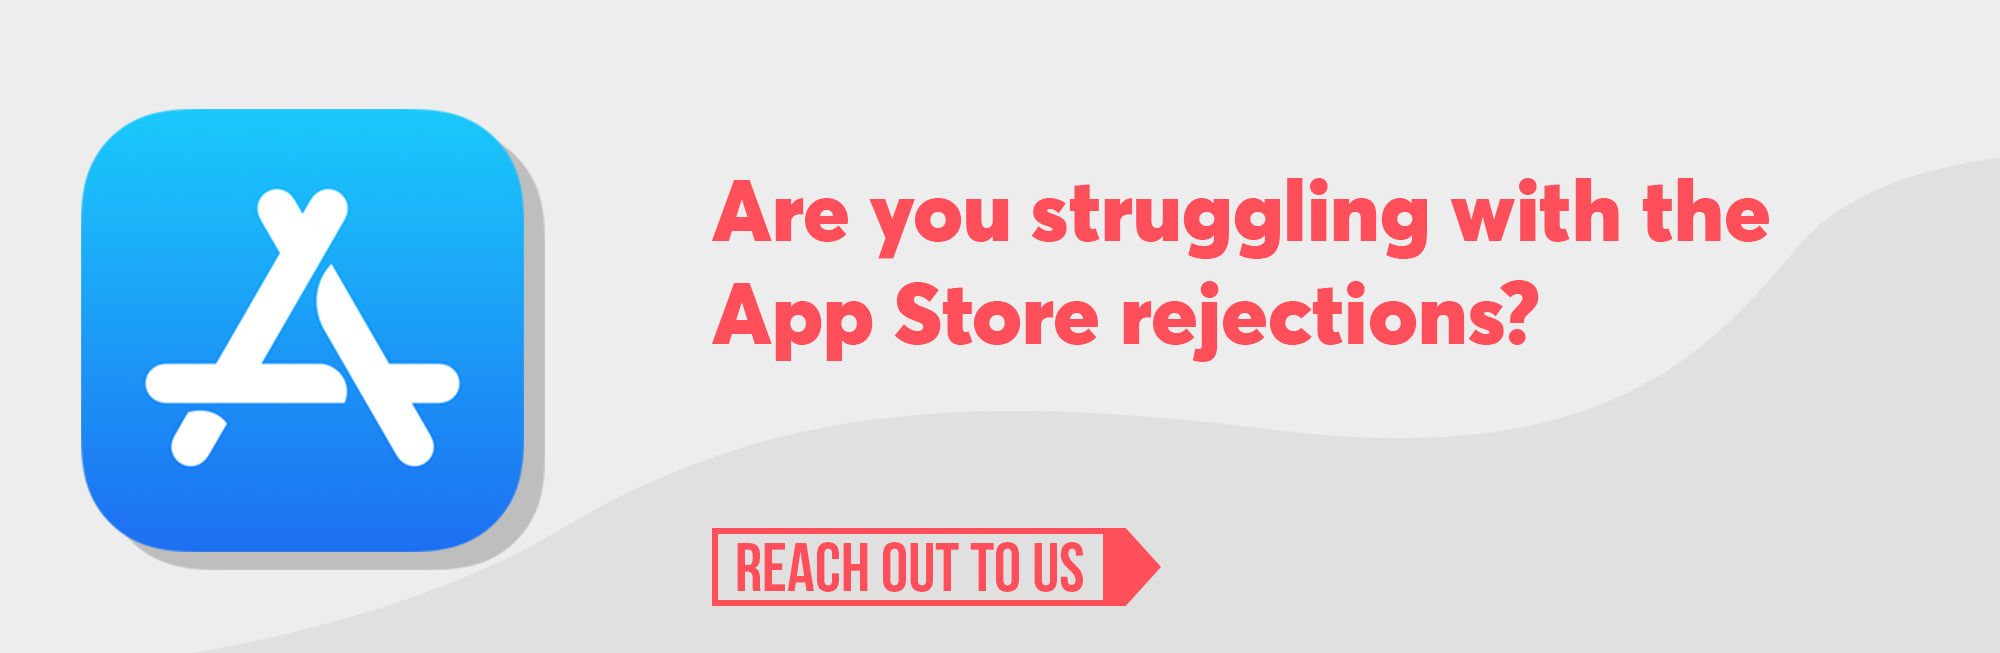 Why Does the App Store Keep on Rejecting My Apps CTA